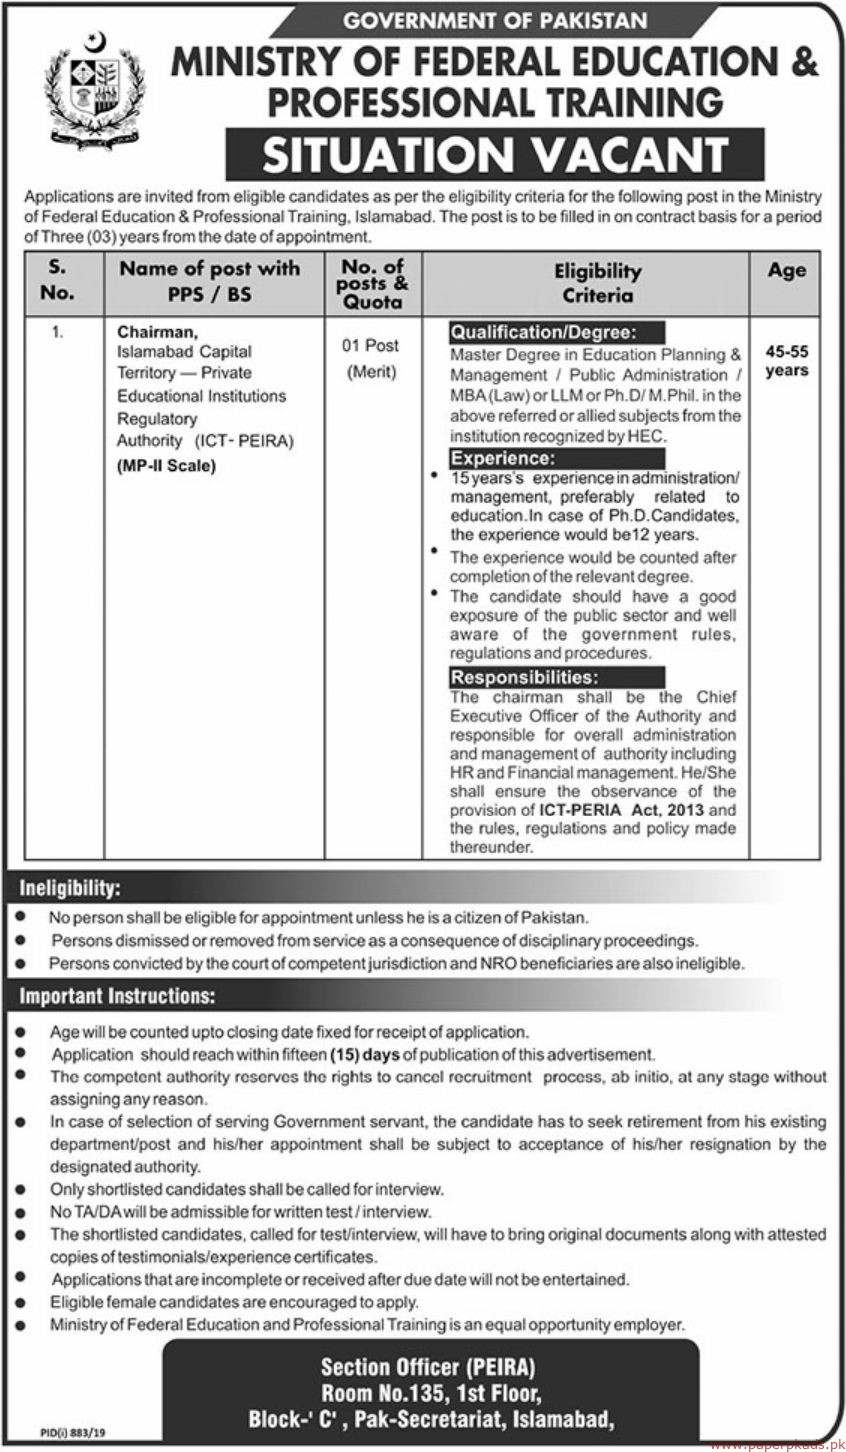 Government of Pakistan Ministry of Federal Education & Professional Training Jobs 2019 Latest